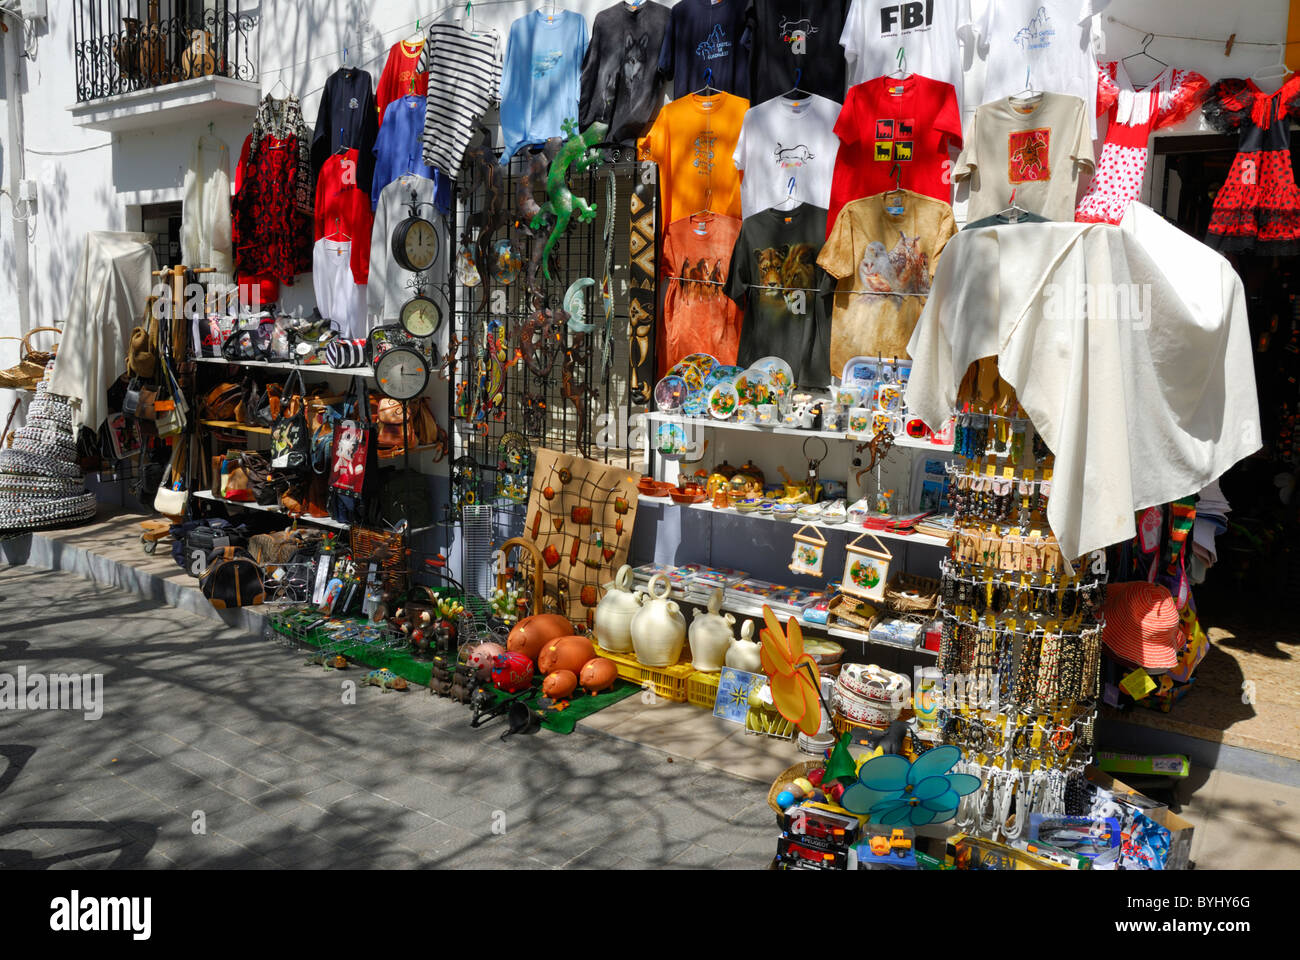 Tourist Souvenirs & Gifts in a Shop in Guadalest, Valencia, Spain - Stock Image